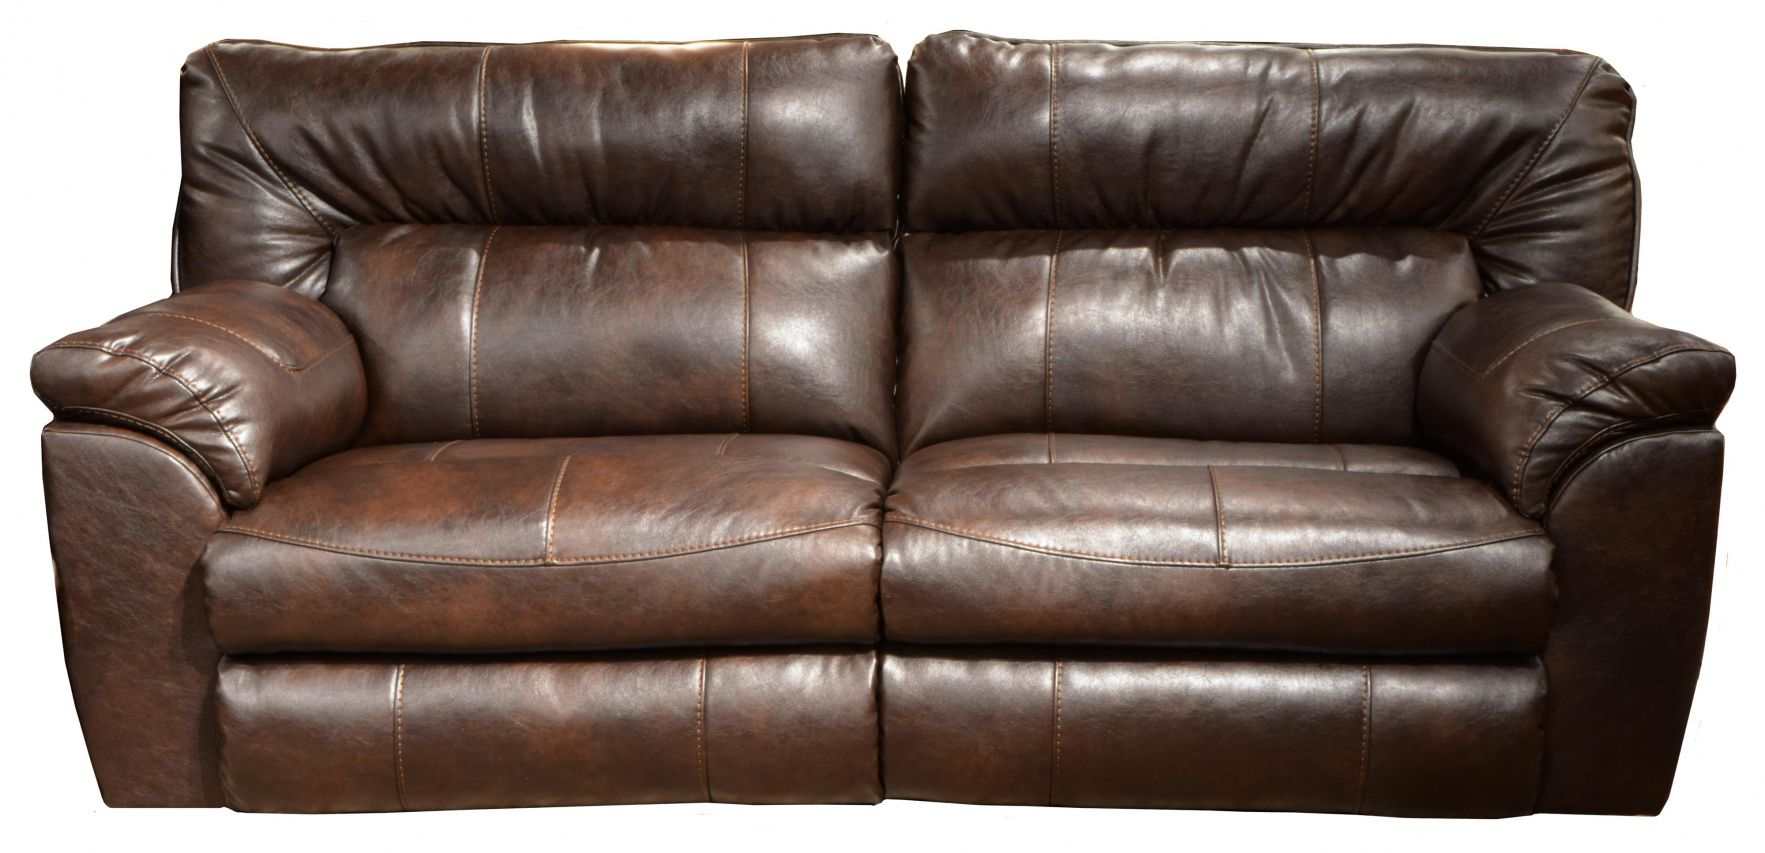 Superieur 77+ Extra Wide Leather Chair   Best Way To Paint Furniture Check More At  Http